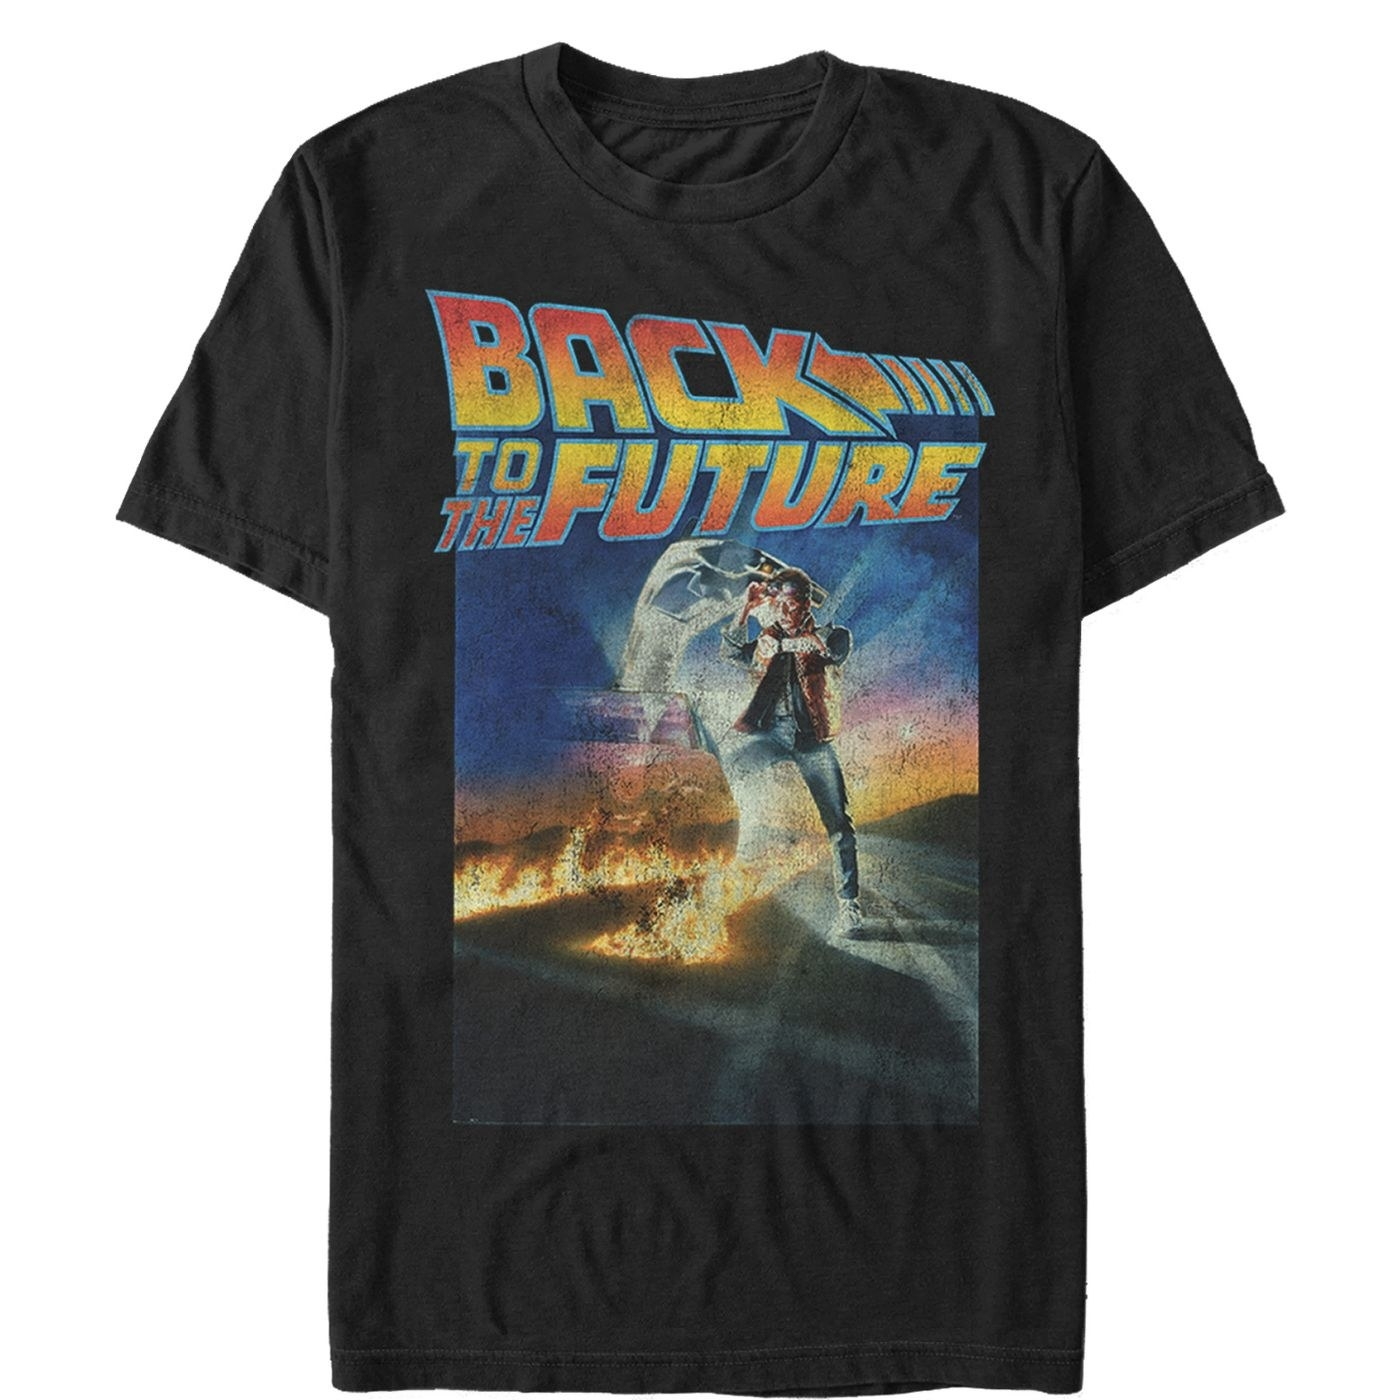 Black, orange and blue shirt with marty mcfly on the front